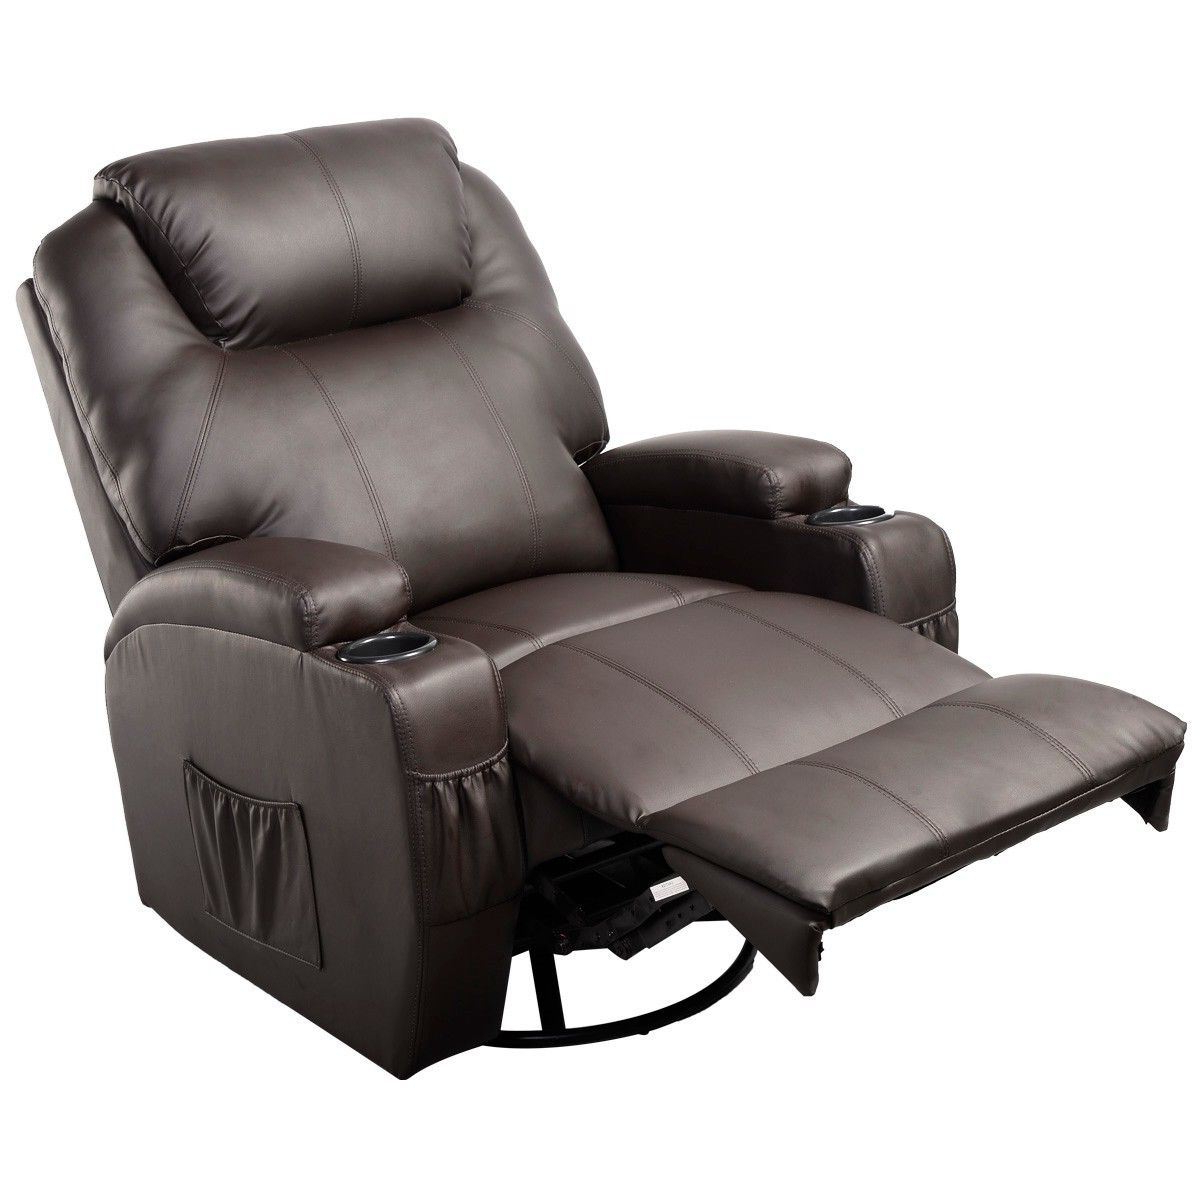 Best Recliner Sofa Chair 44 For Your Modern Sofa Ideas With Recliner In Well Known Sofa Chair Recliner (View 4 of 20)